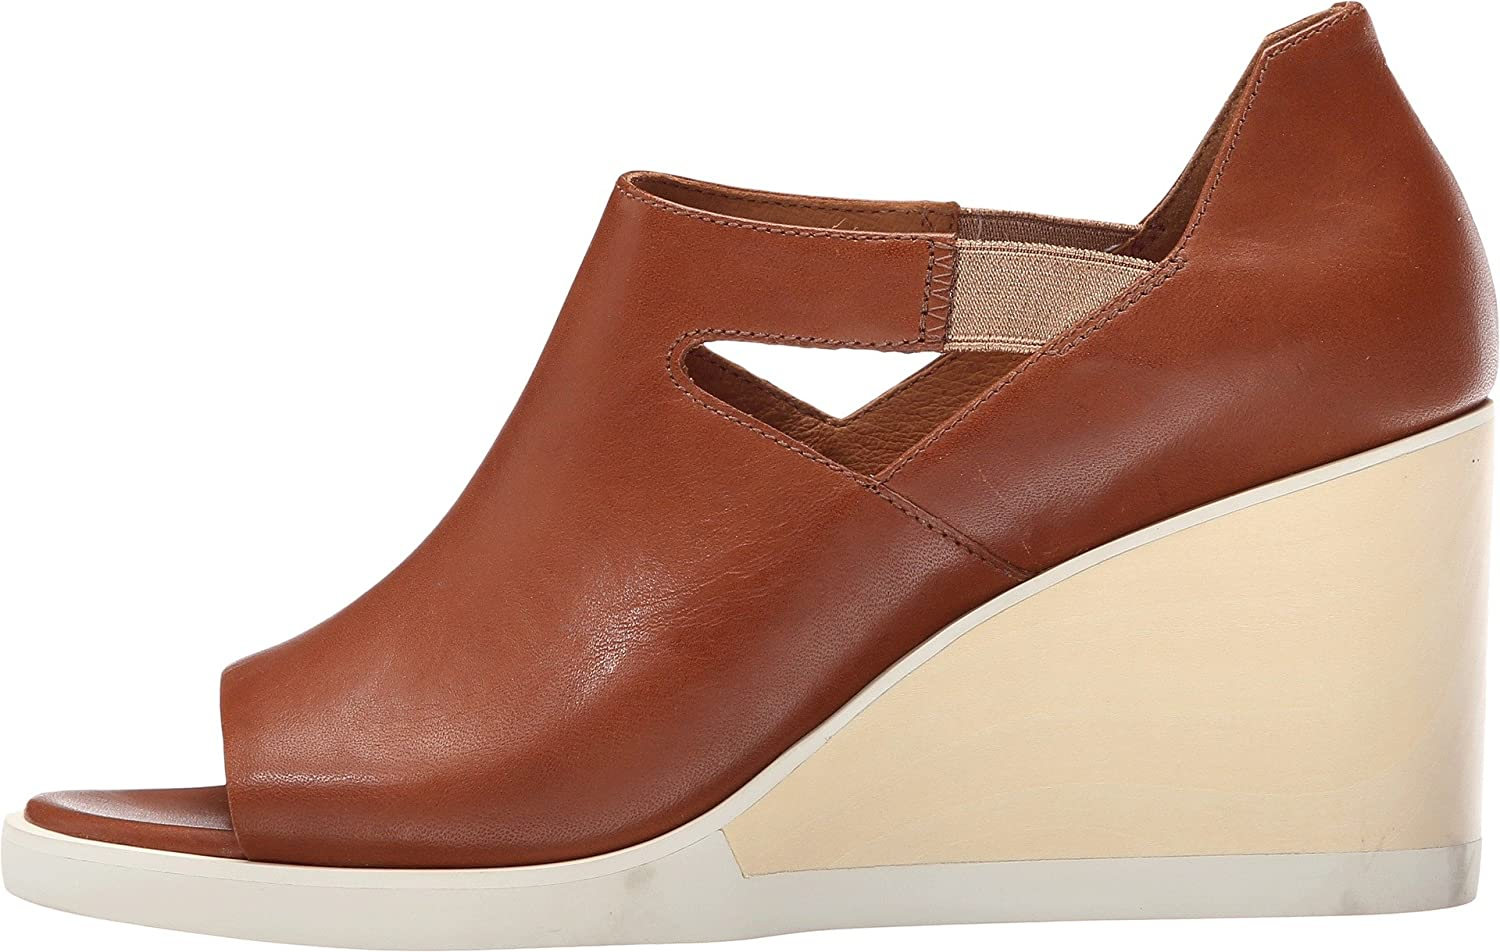 Camper Women's Limi Wedge Sandals B011BCWN0U 10 B(M) US|Medium Brown